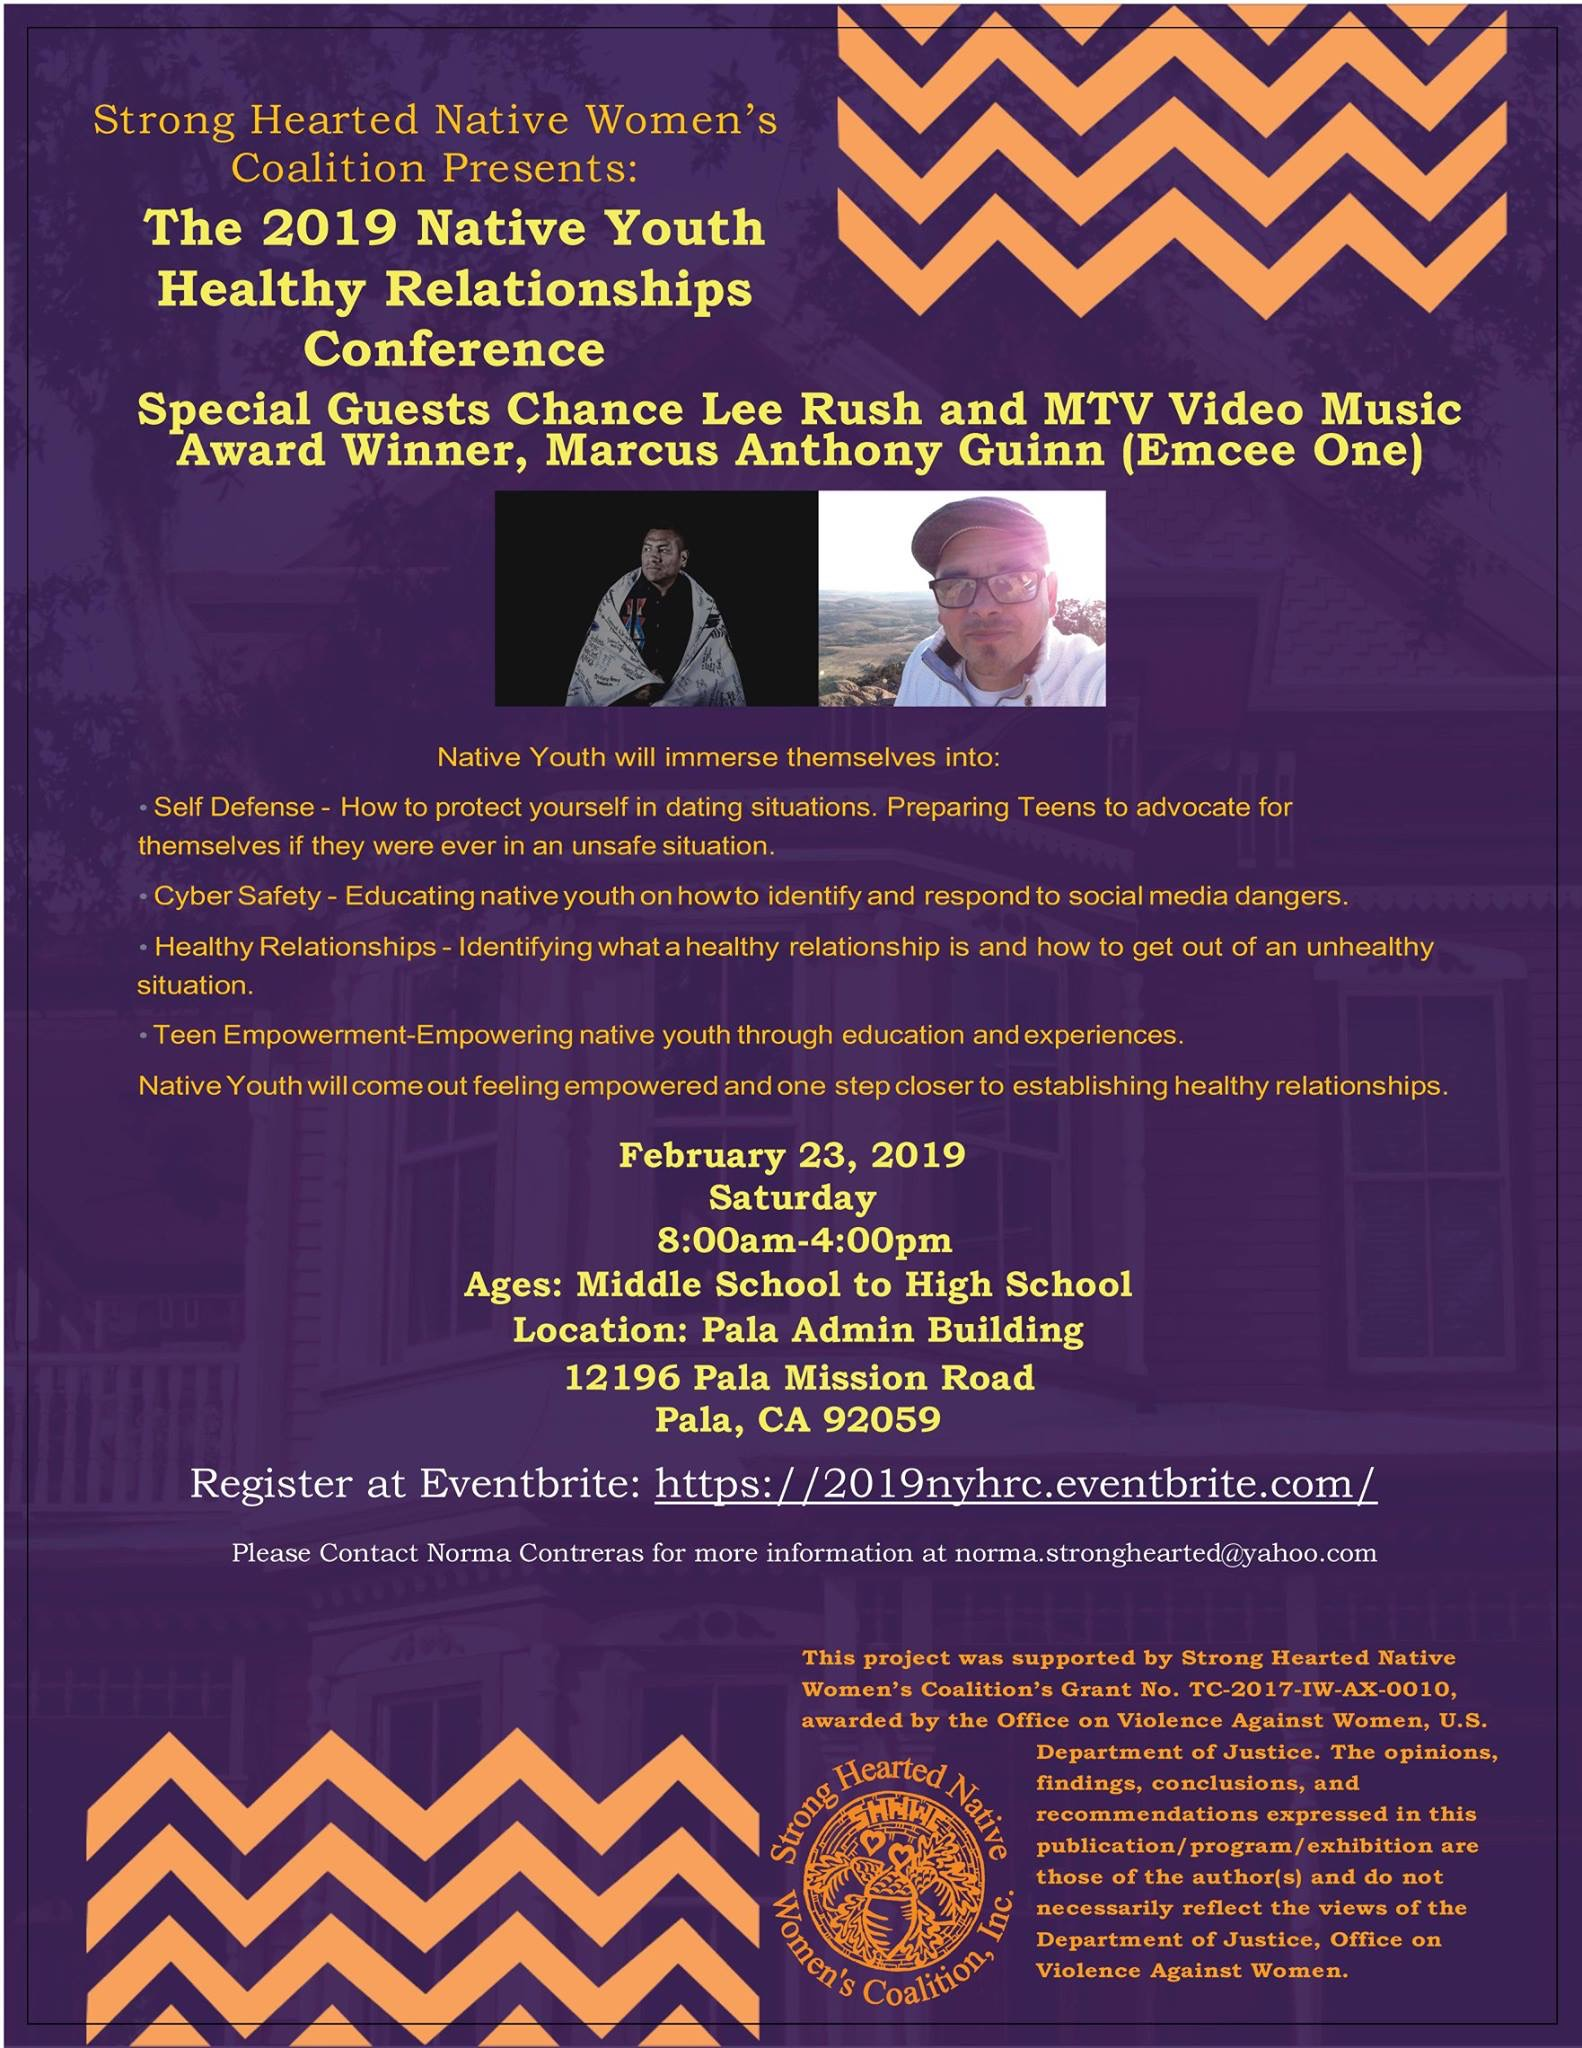 The 2019 Native Youth Healthy Relationships Conference – SCTCA